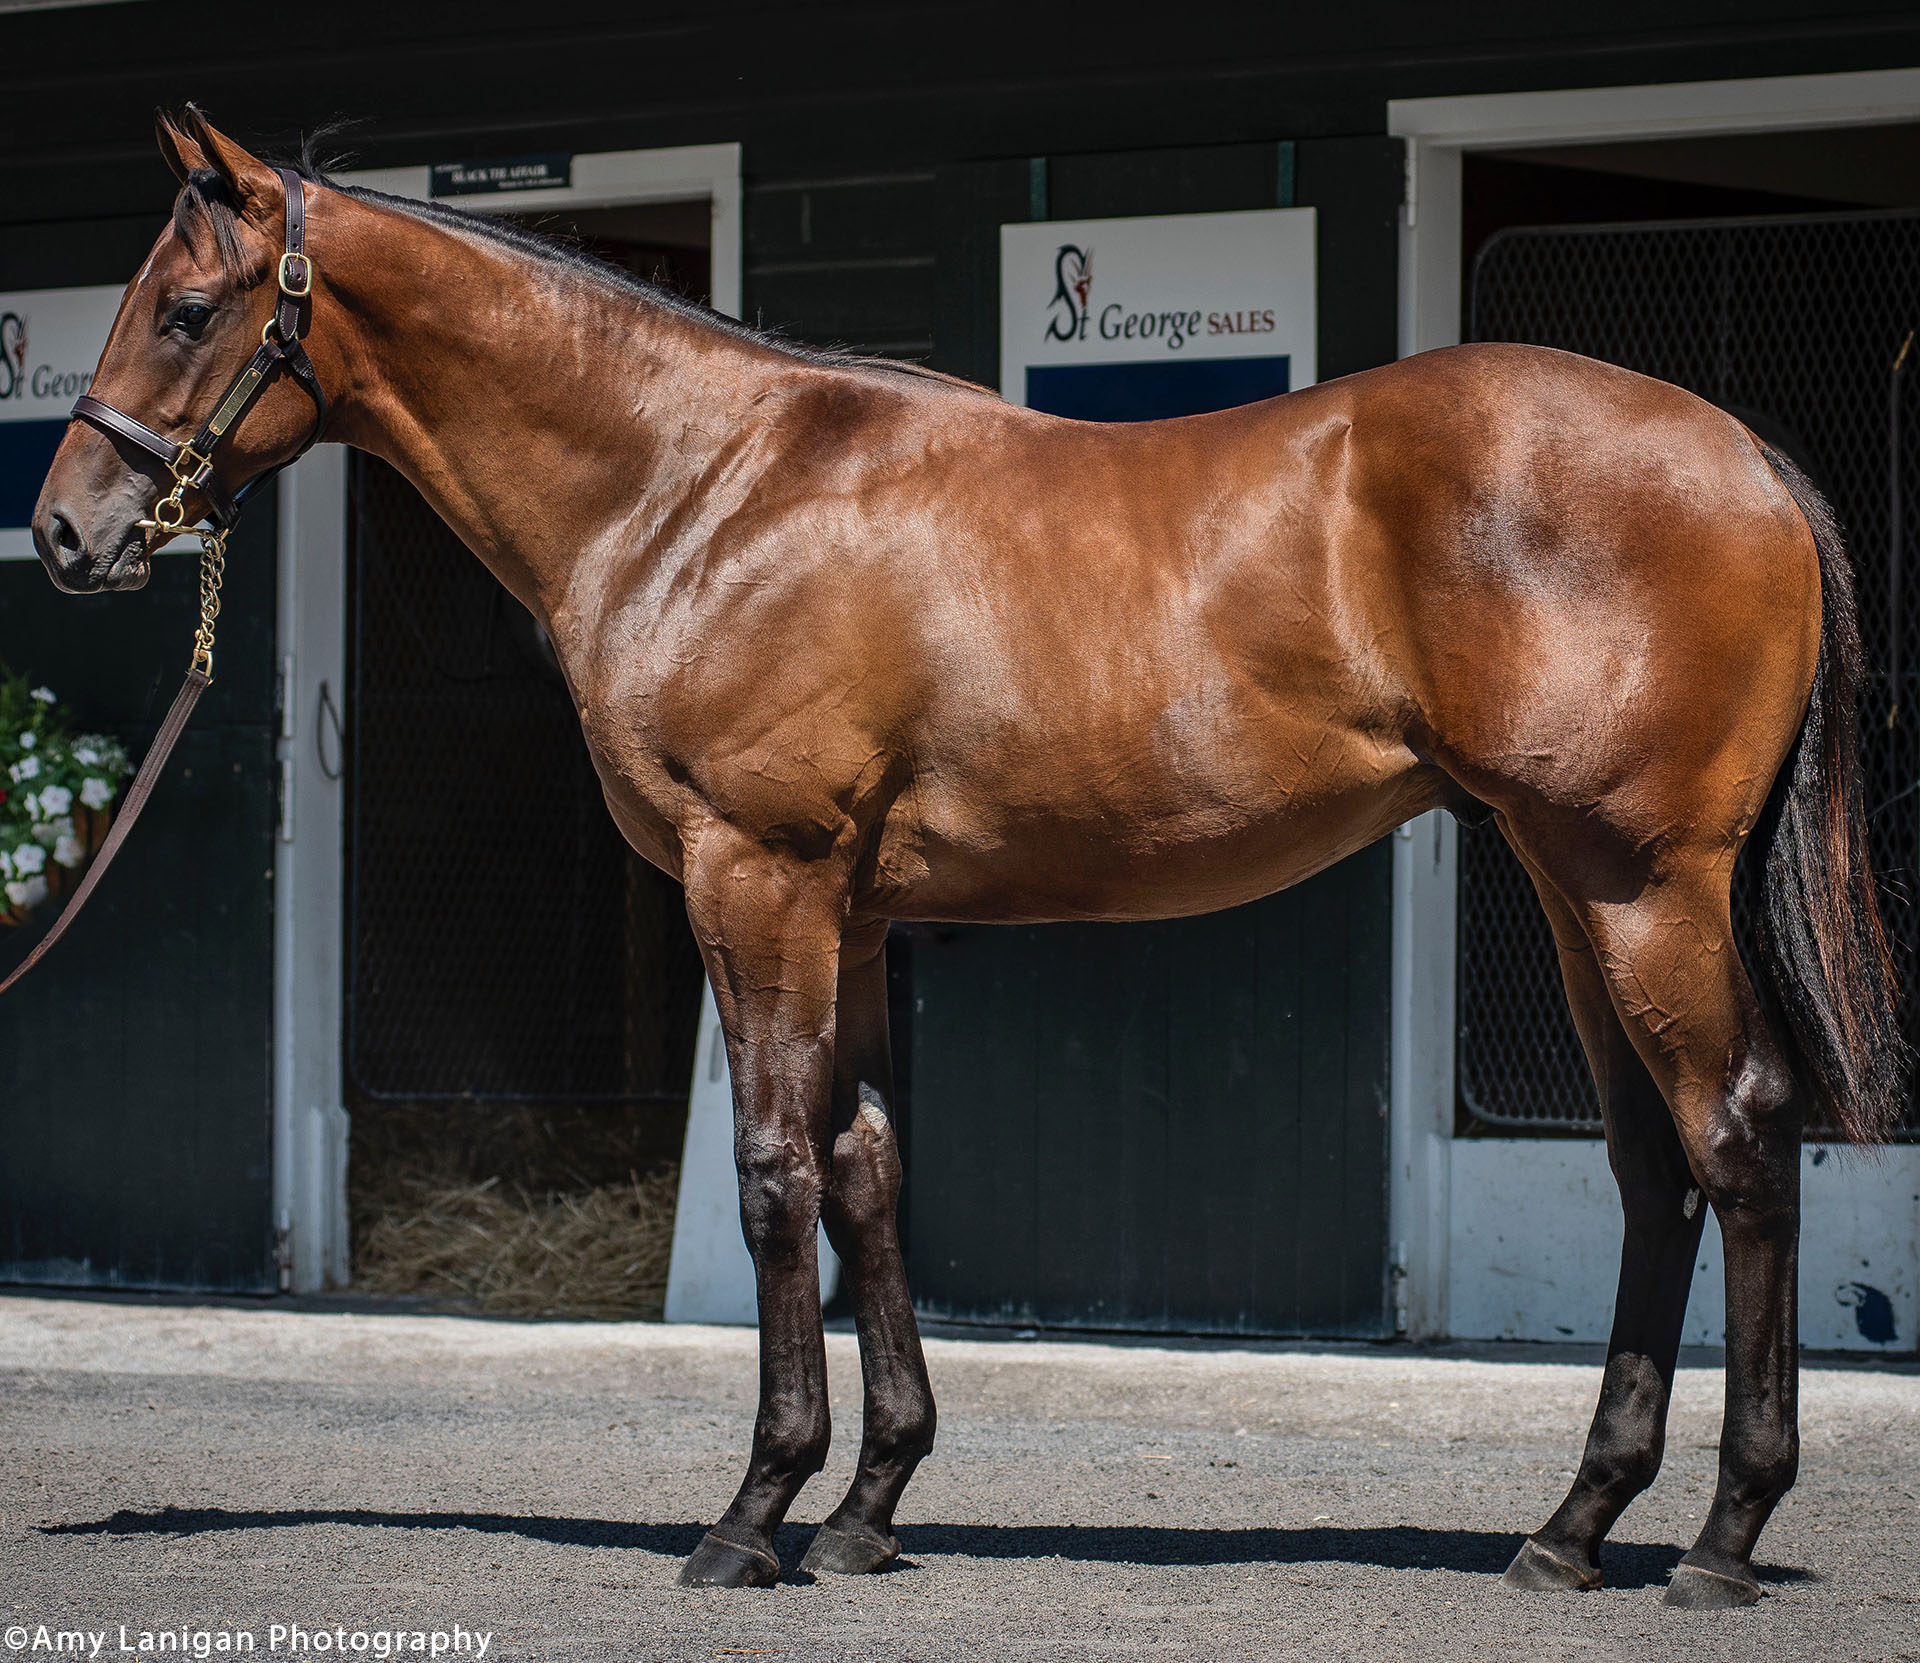 Arrogate colt out of the Harlan's Holiday mare Stellaris, purchased at Fasig-Tipton's 100th Saratoga Sale and available in the Kiawah thoroughbred racing partnership.